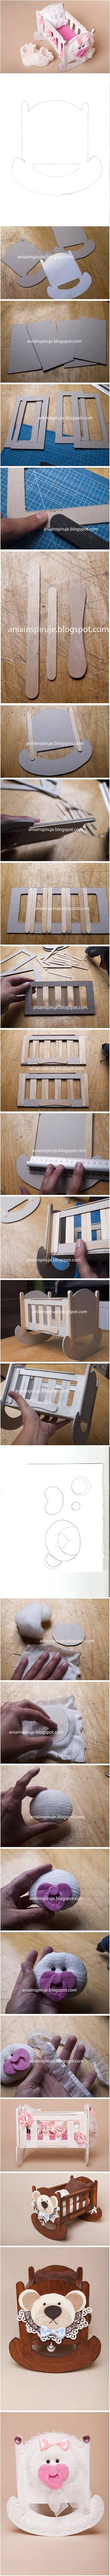 DIY Cardboard Baby Cradle DIY Cardboard Baby Cradle ~ cute for baby shower… Barbie Furniture, Dollhouse Furniture, Diy Dollhouse, Dollhouse Miniatures, Baby Crafts, Kids Crafts, Diy Paper, Paper Crafts, Card In A Box